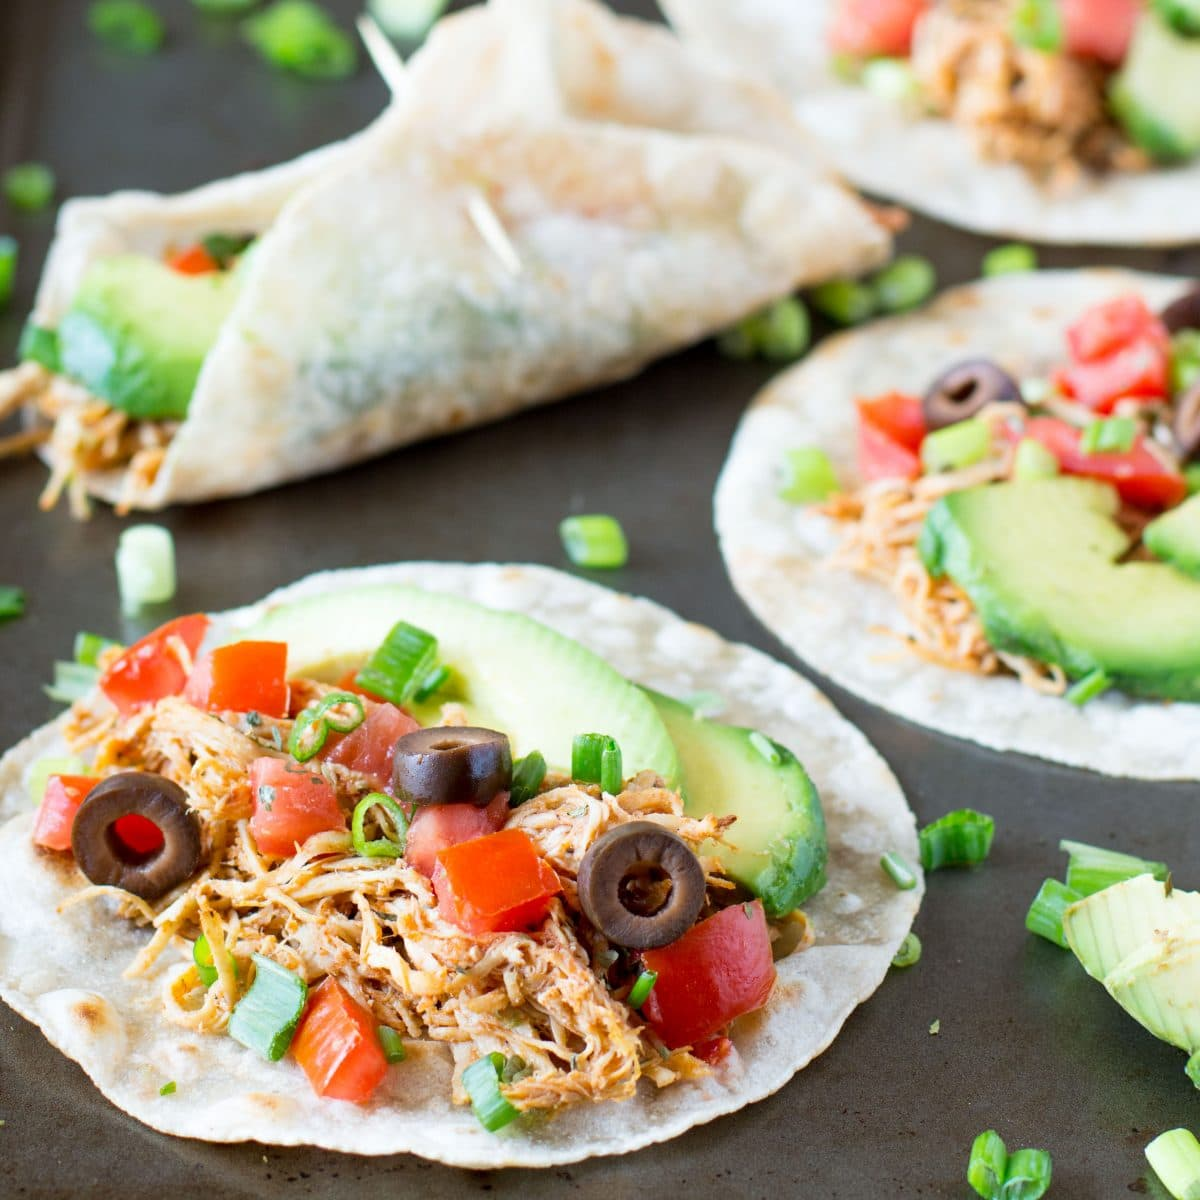 Healthy Chipotle Chicken with healthy sides